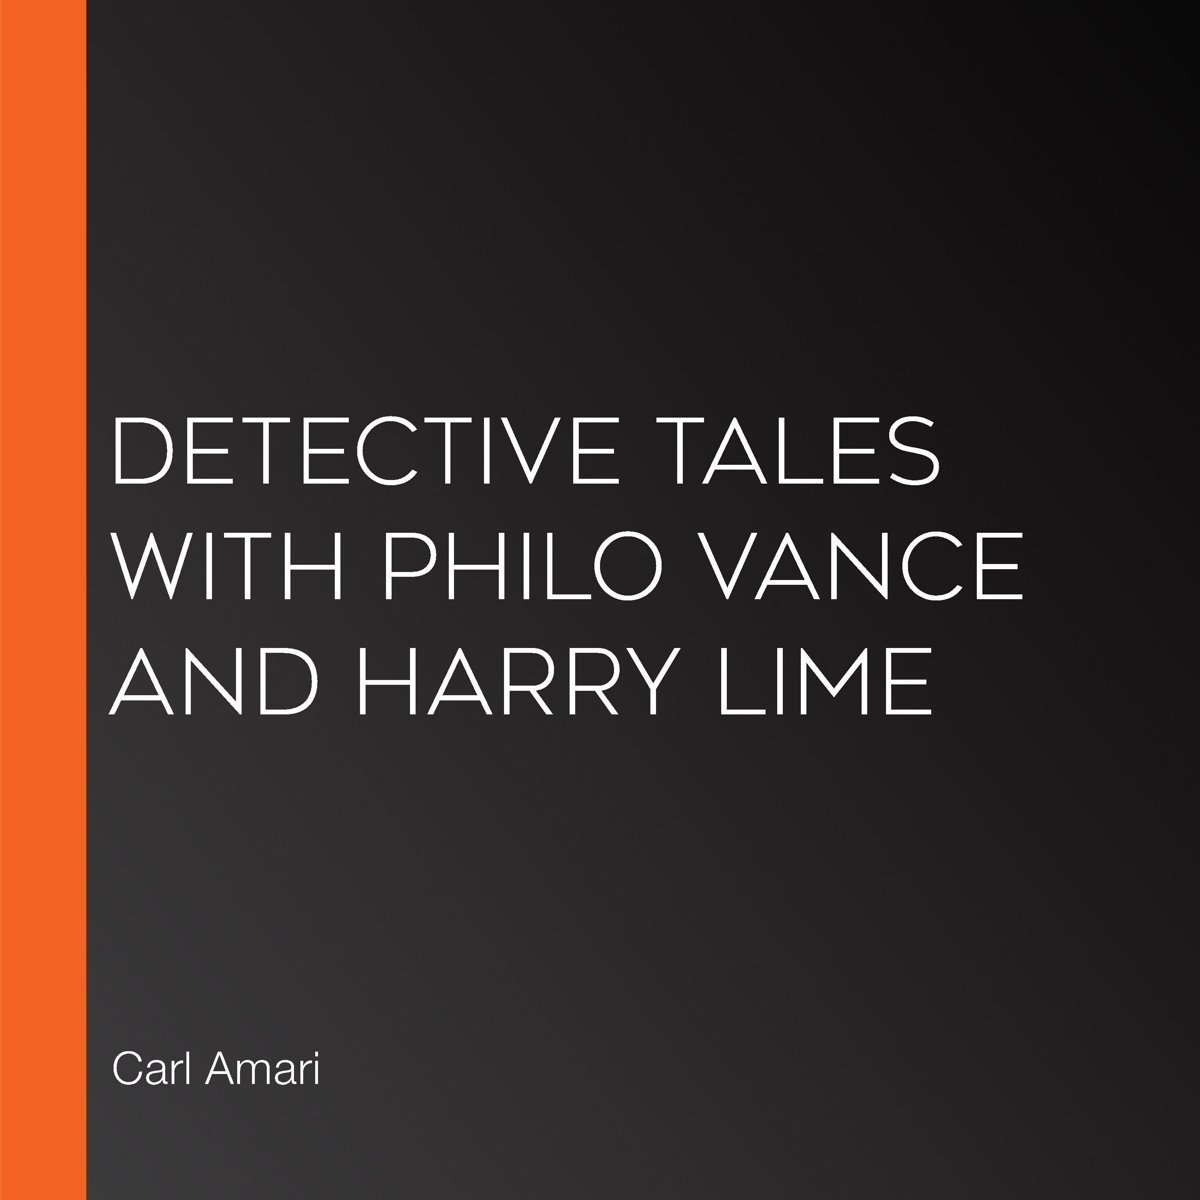 Detective Tales with Philo Vance and Harry Lime